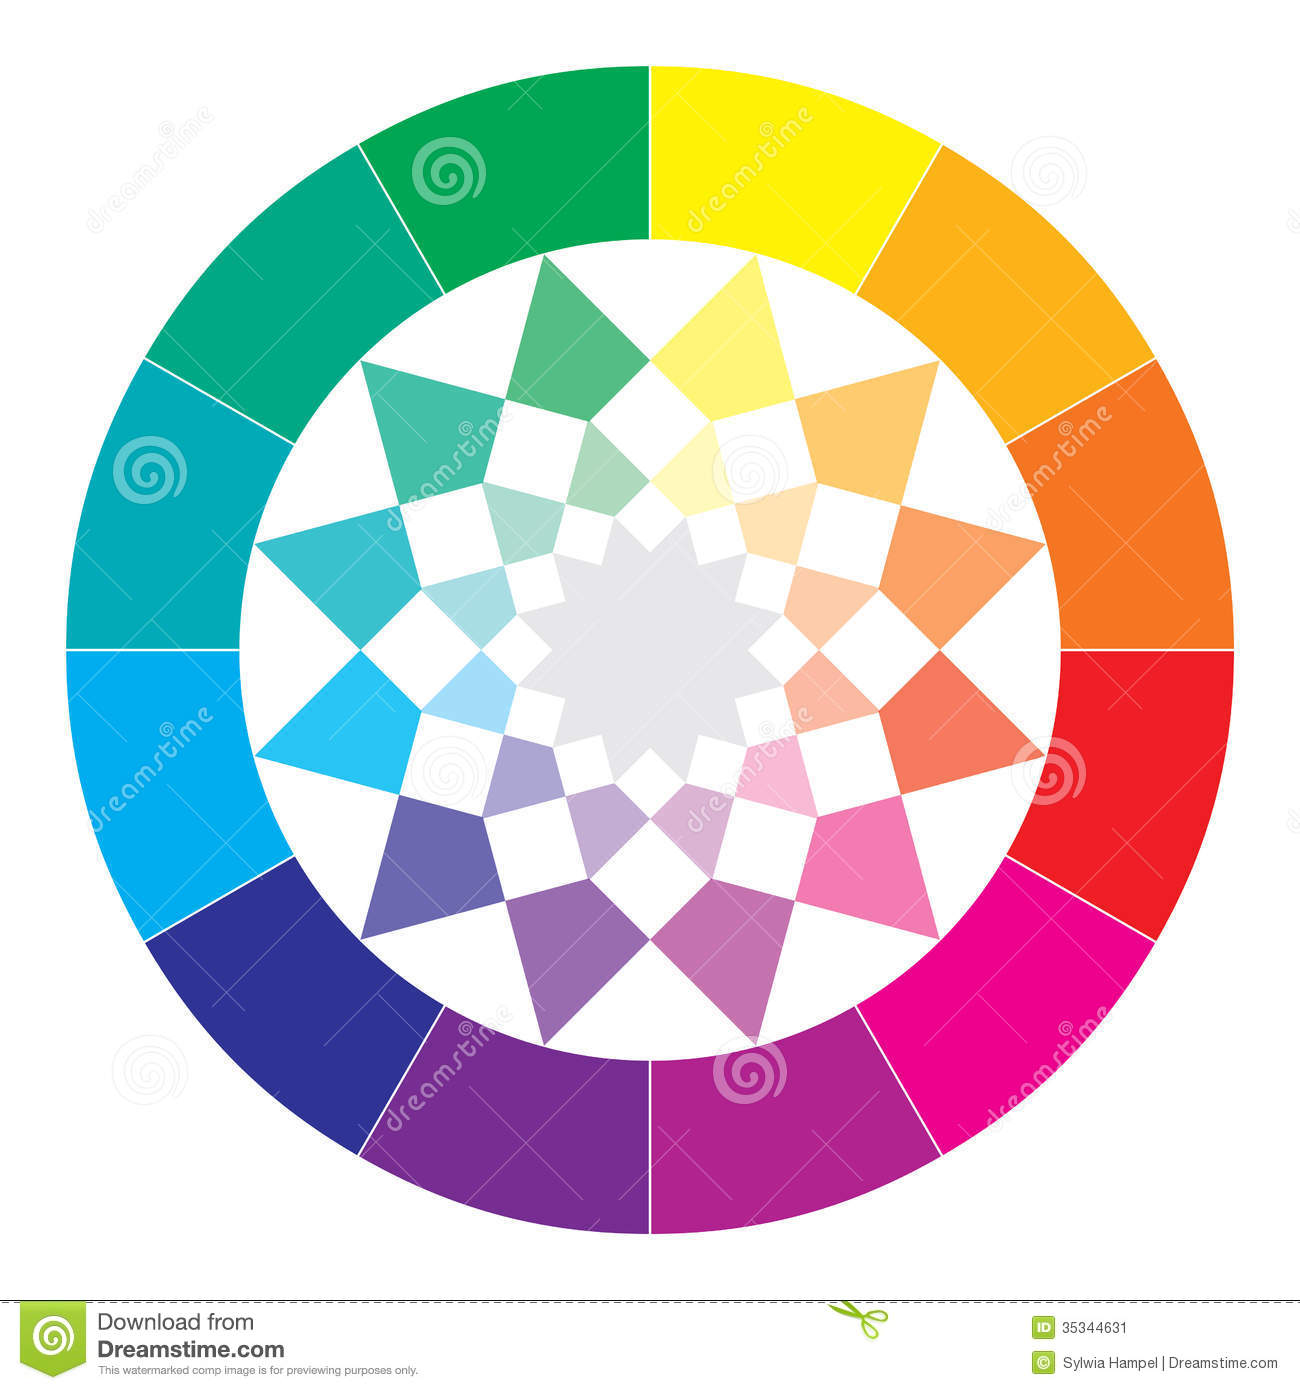 color spectrum abstract wheel, colorful diagram stock vector complementary color diagram 1 2 2 the cie chromaticity diagram